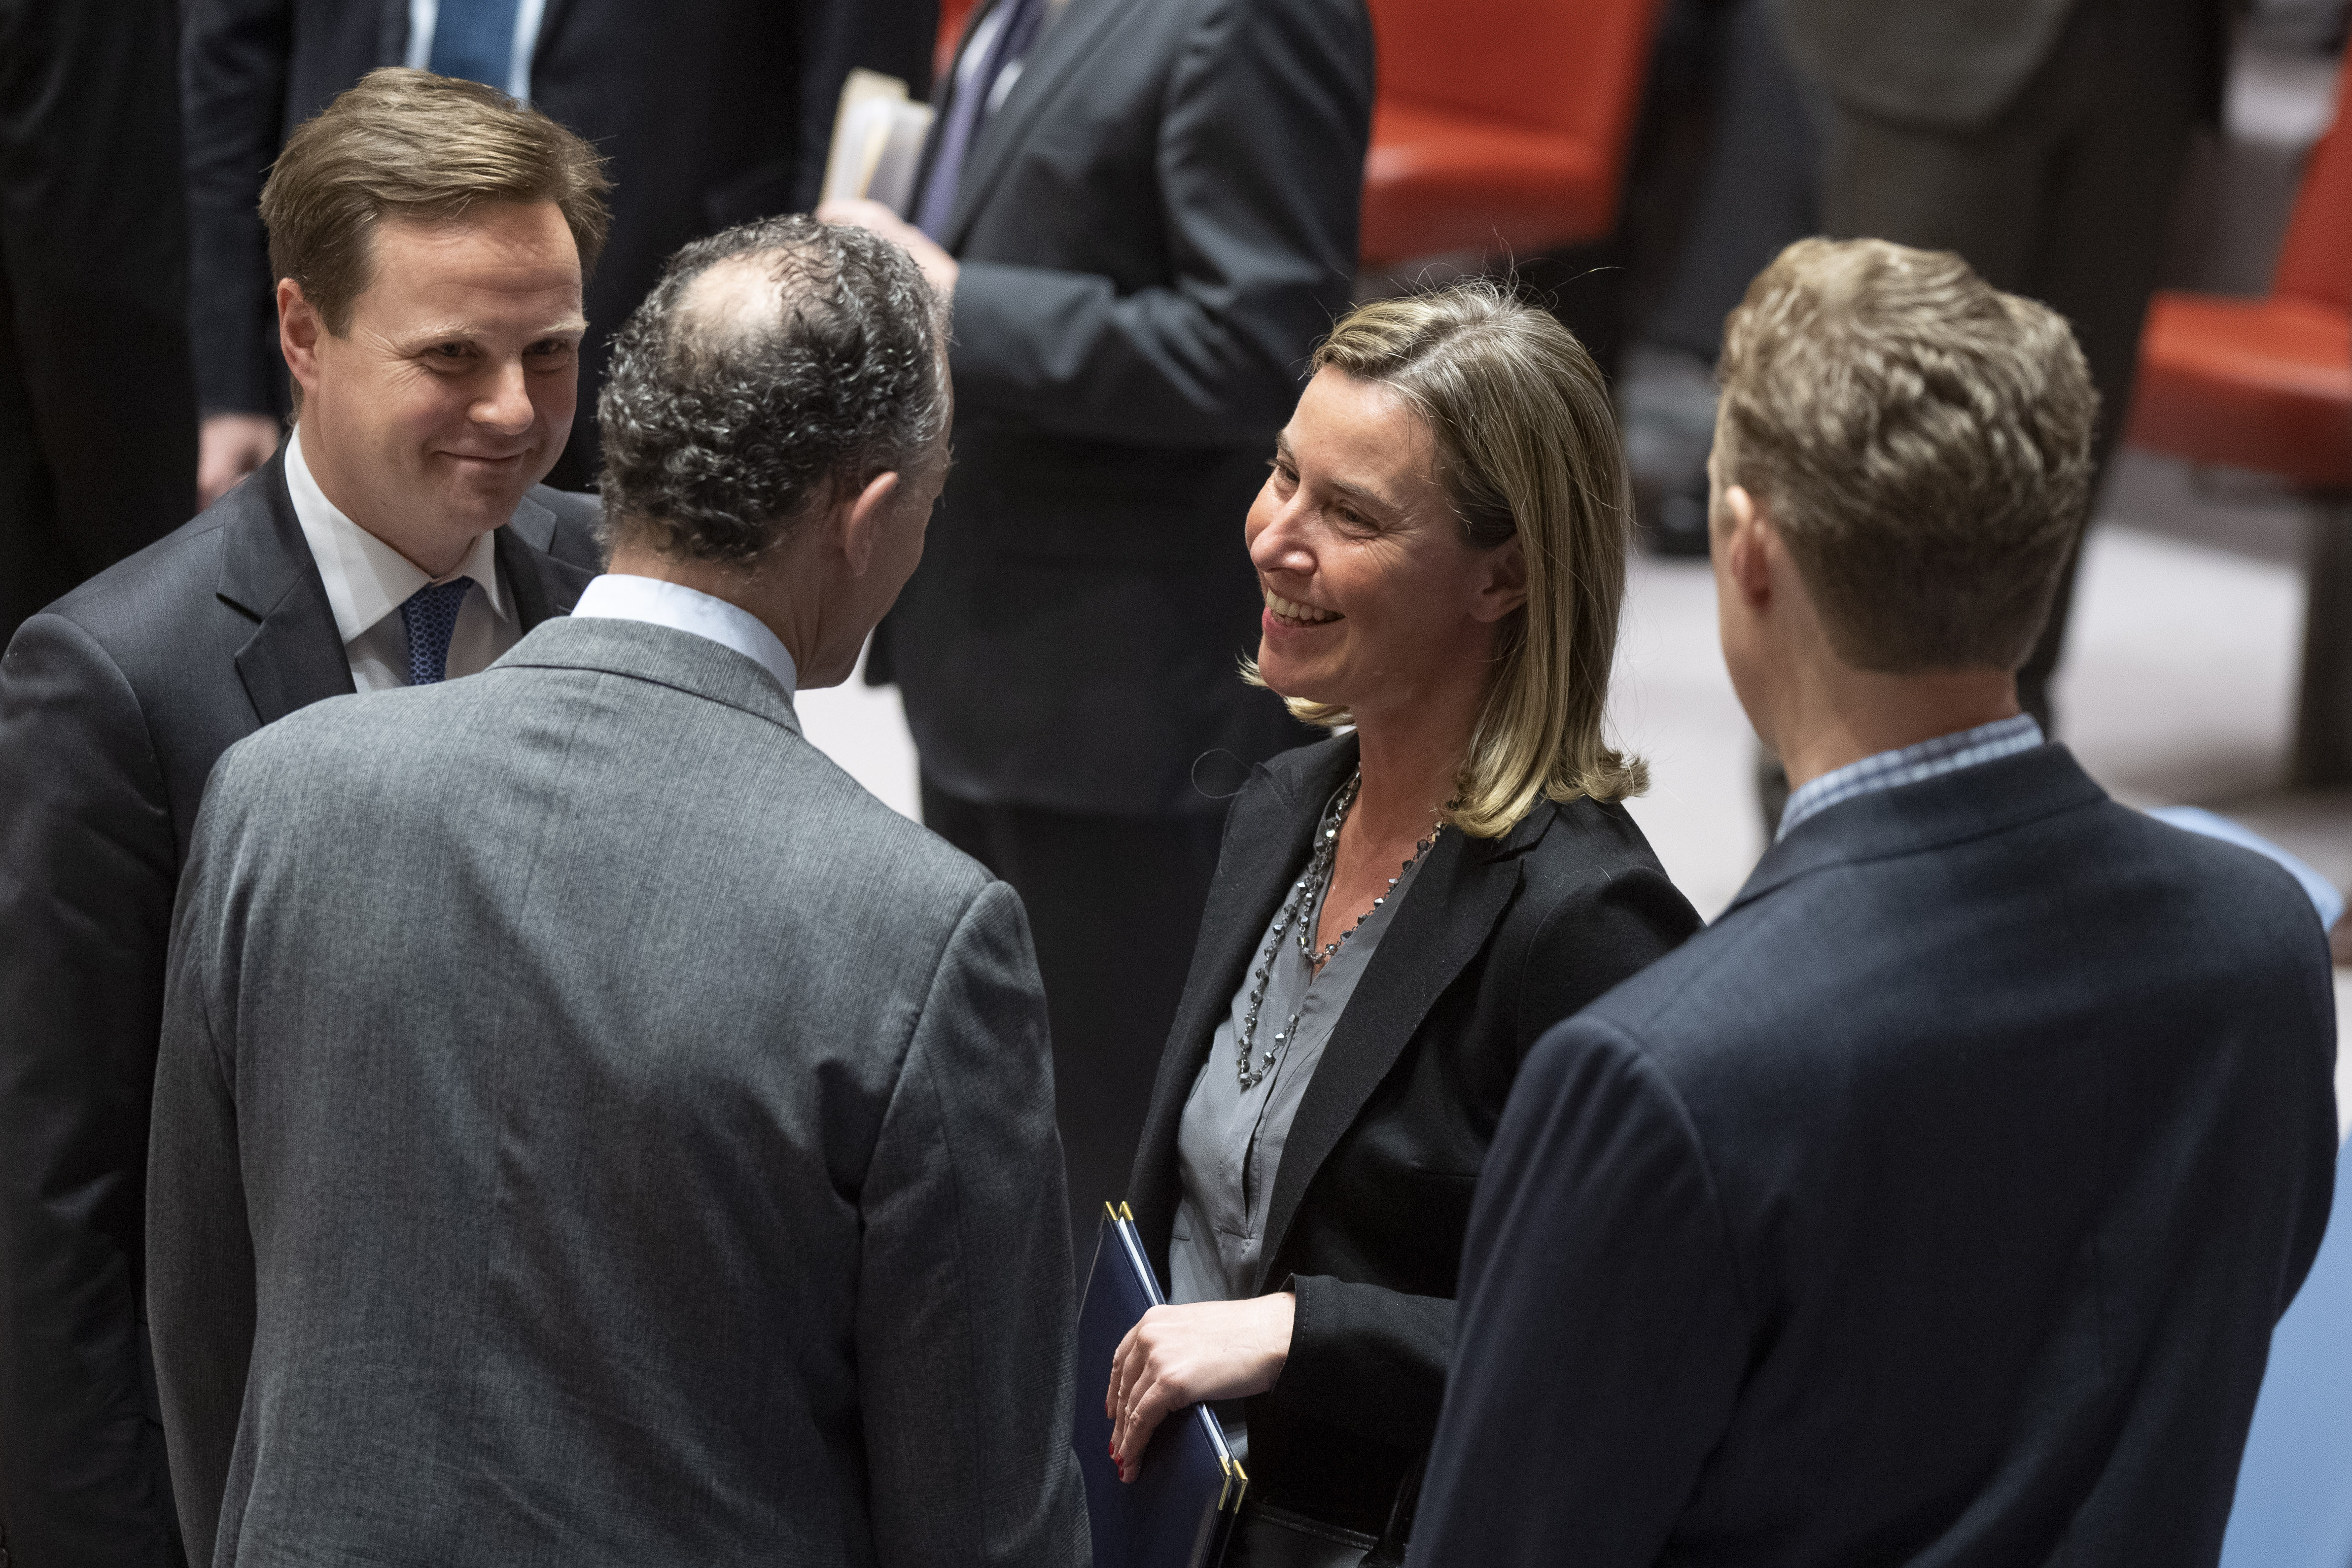 Federica Mogherini (centre right), High Representative of the European Union for Foreign Affairs and Security Policy, speaks with Jonathan R. Cohen (centre left), Acting Permanent Representative of the United States to the UN.